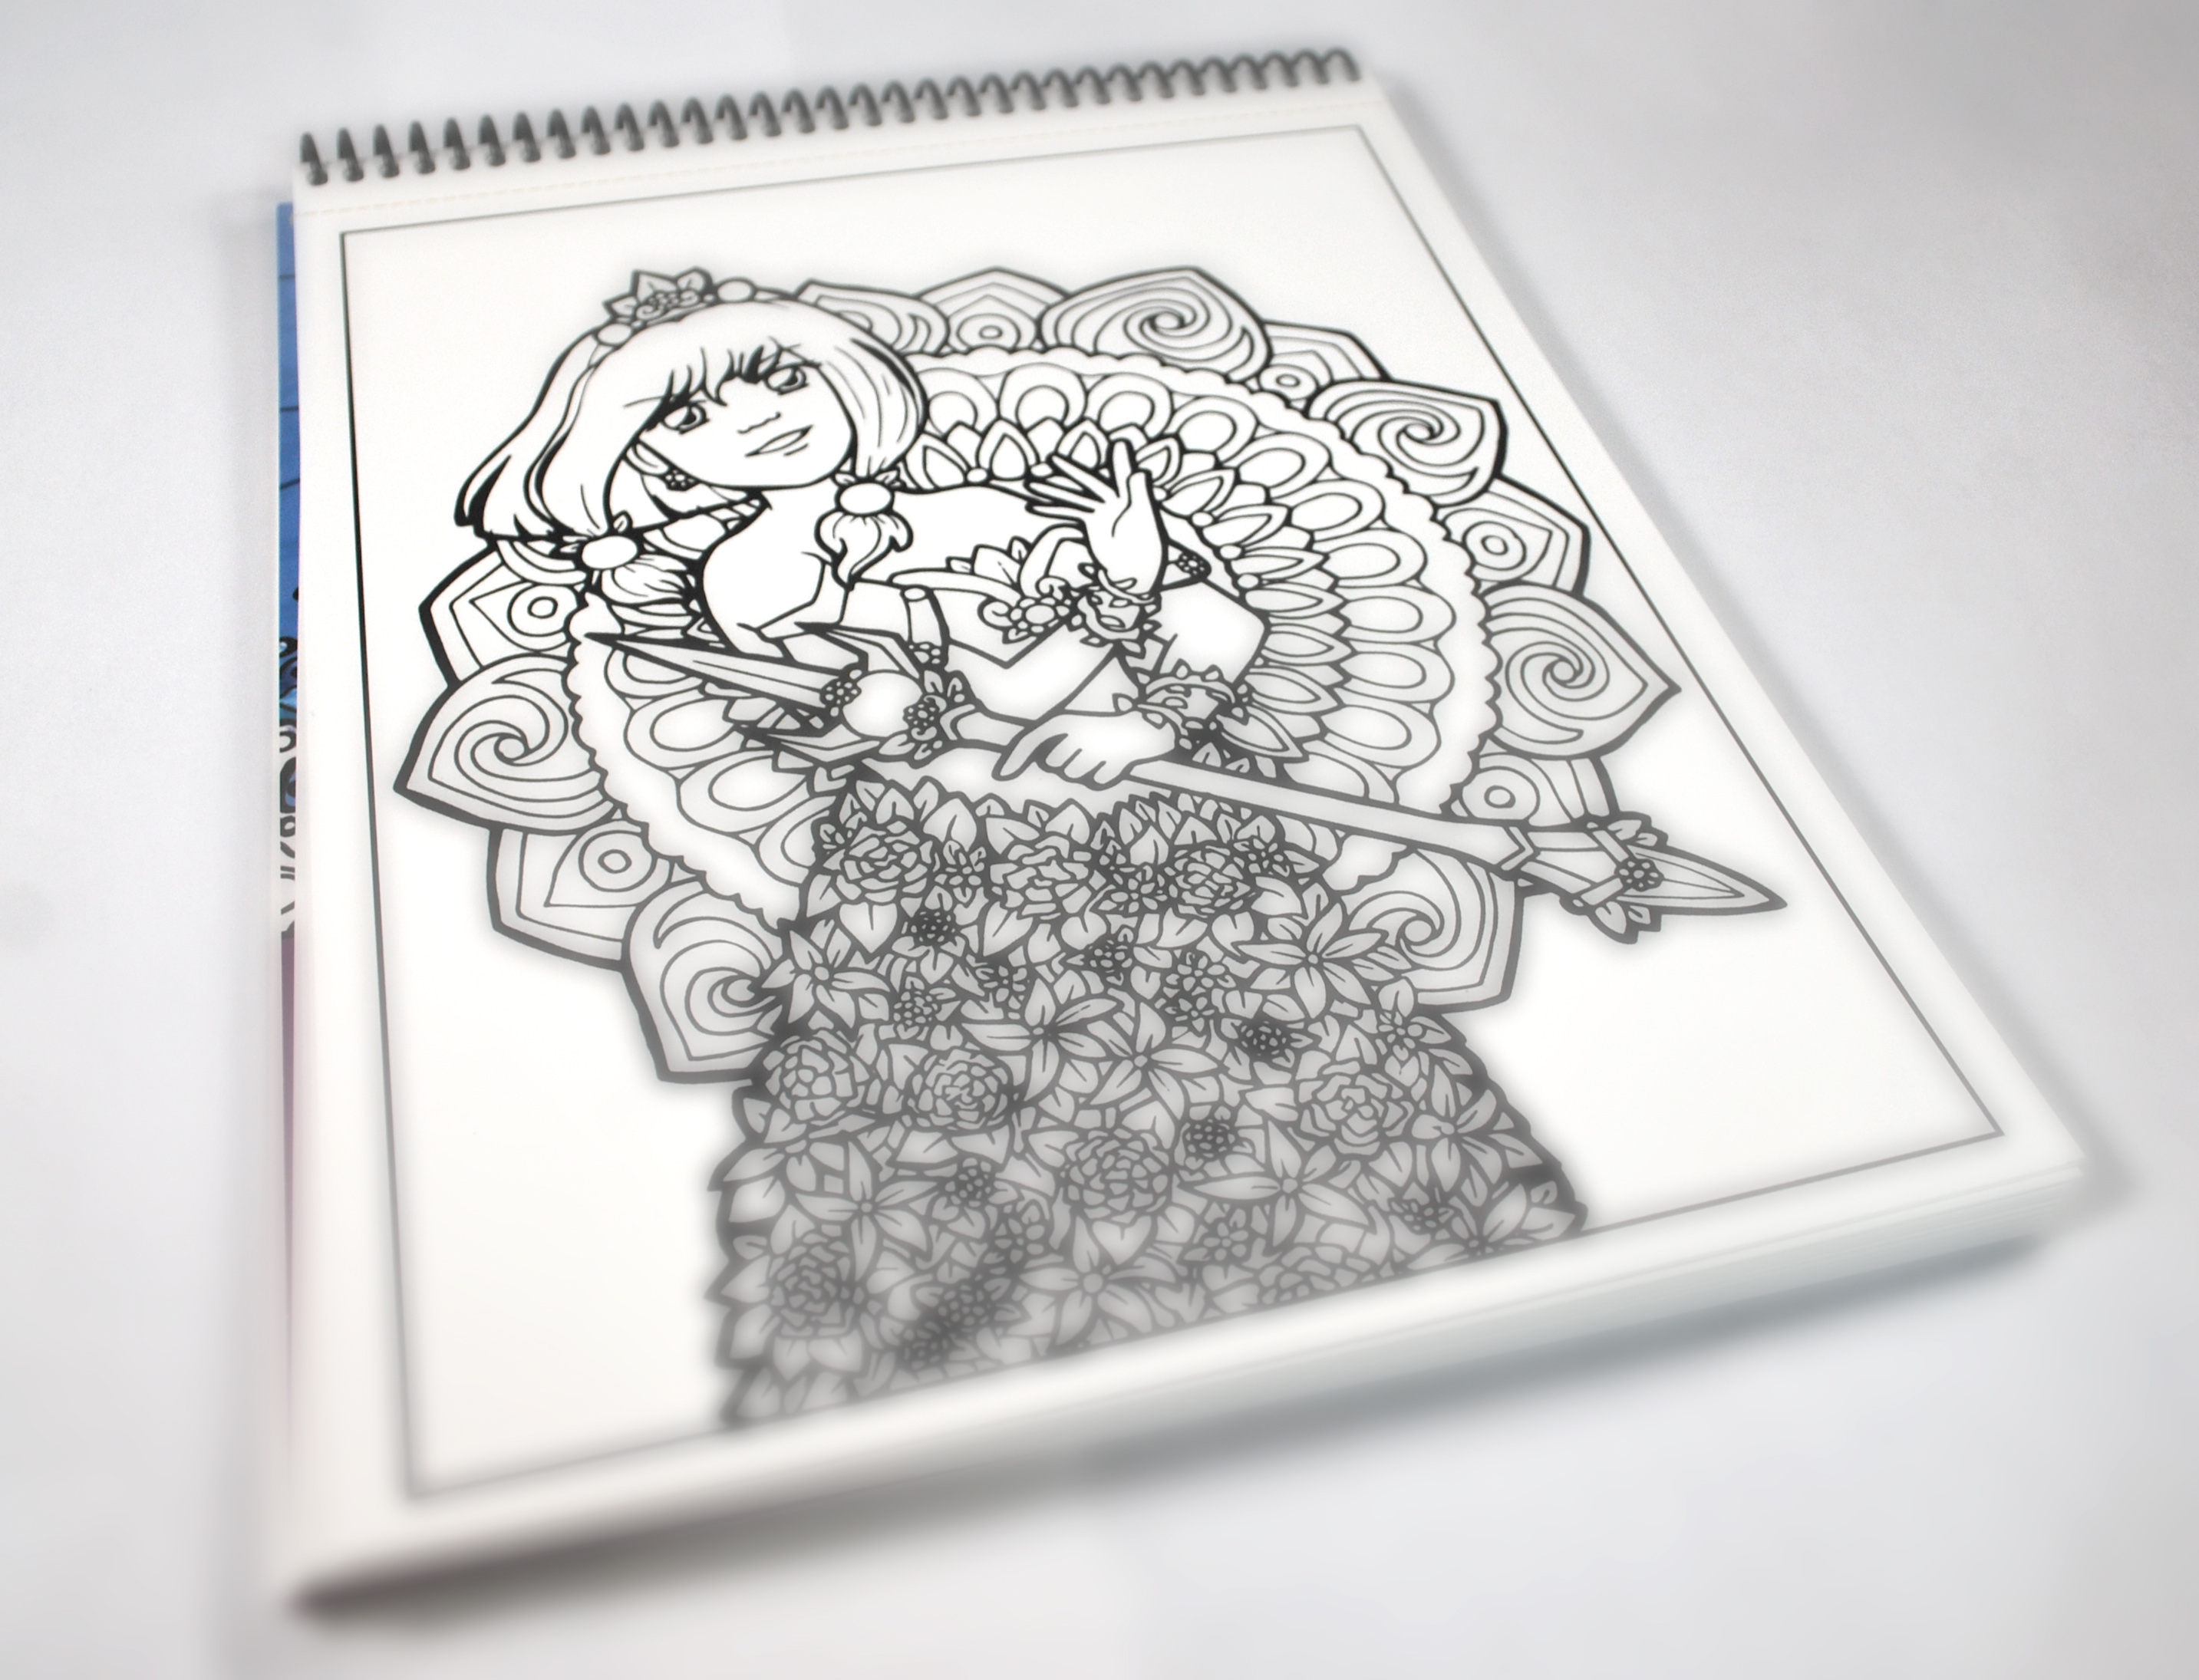 Sakkys Magical Girl Coloring Book